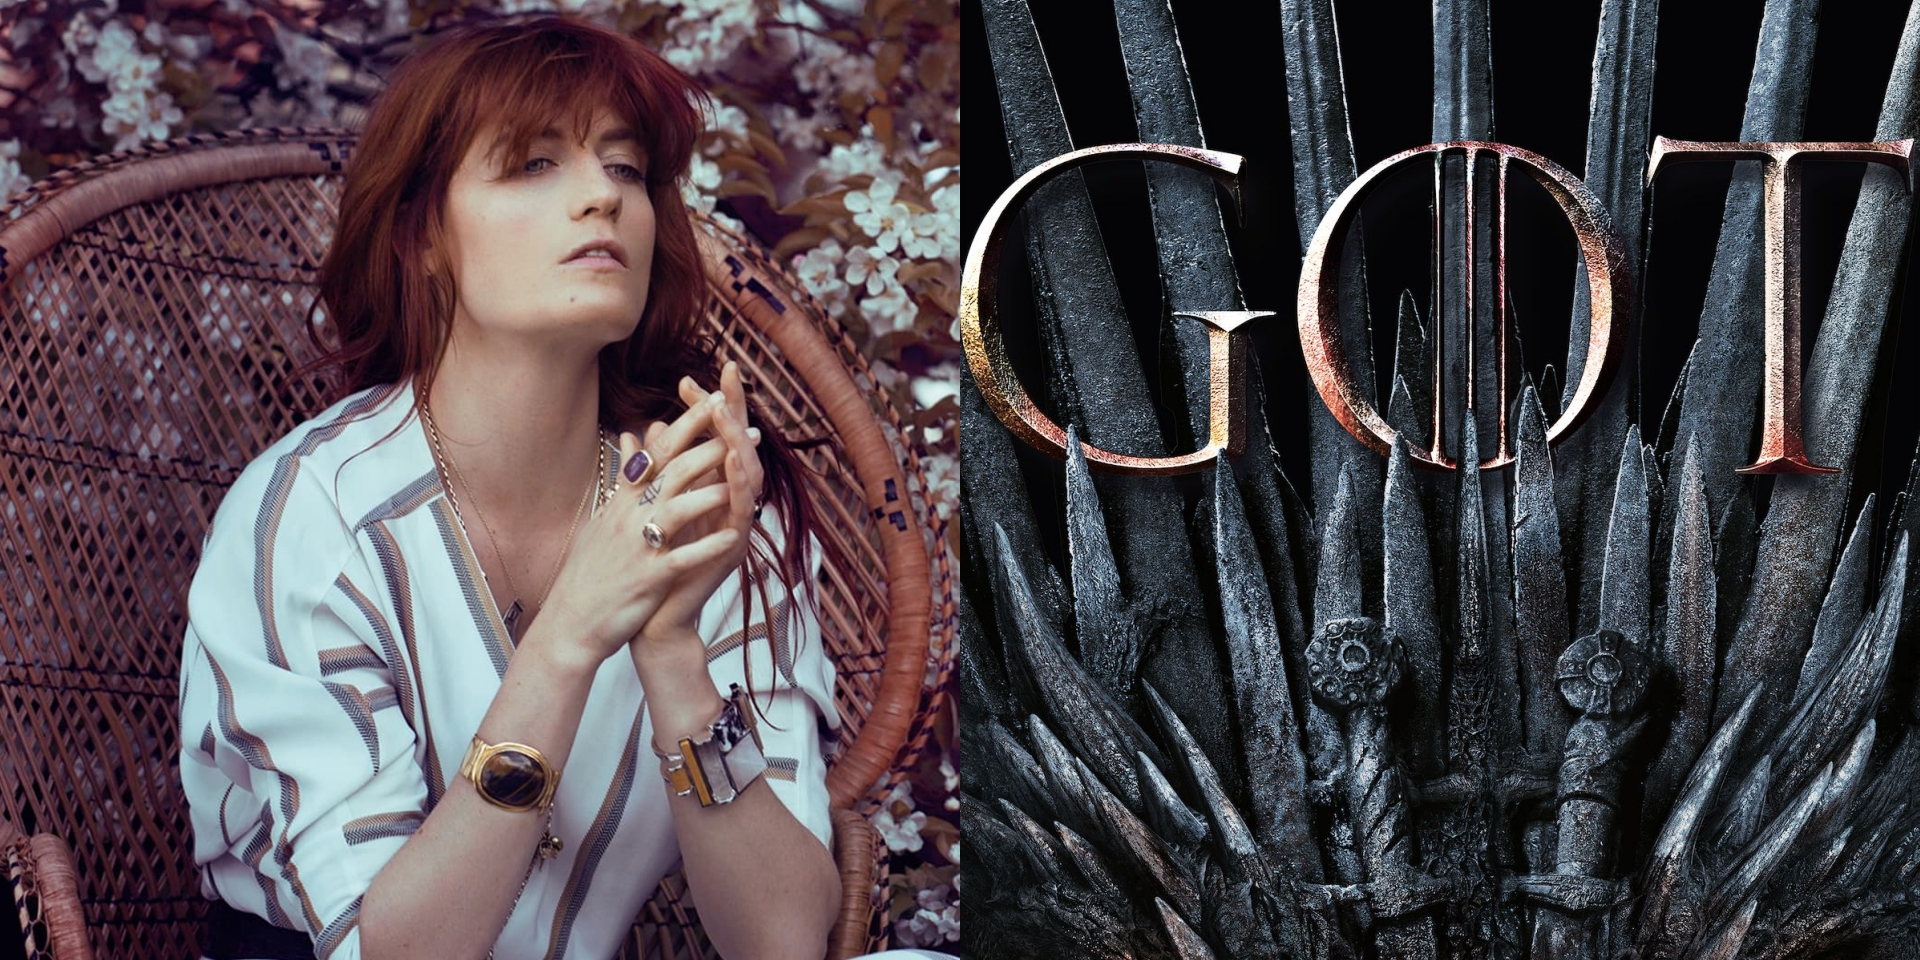 Florence + The Machine have a new song just for Game of Thrones